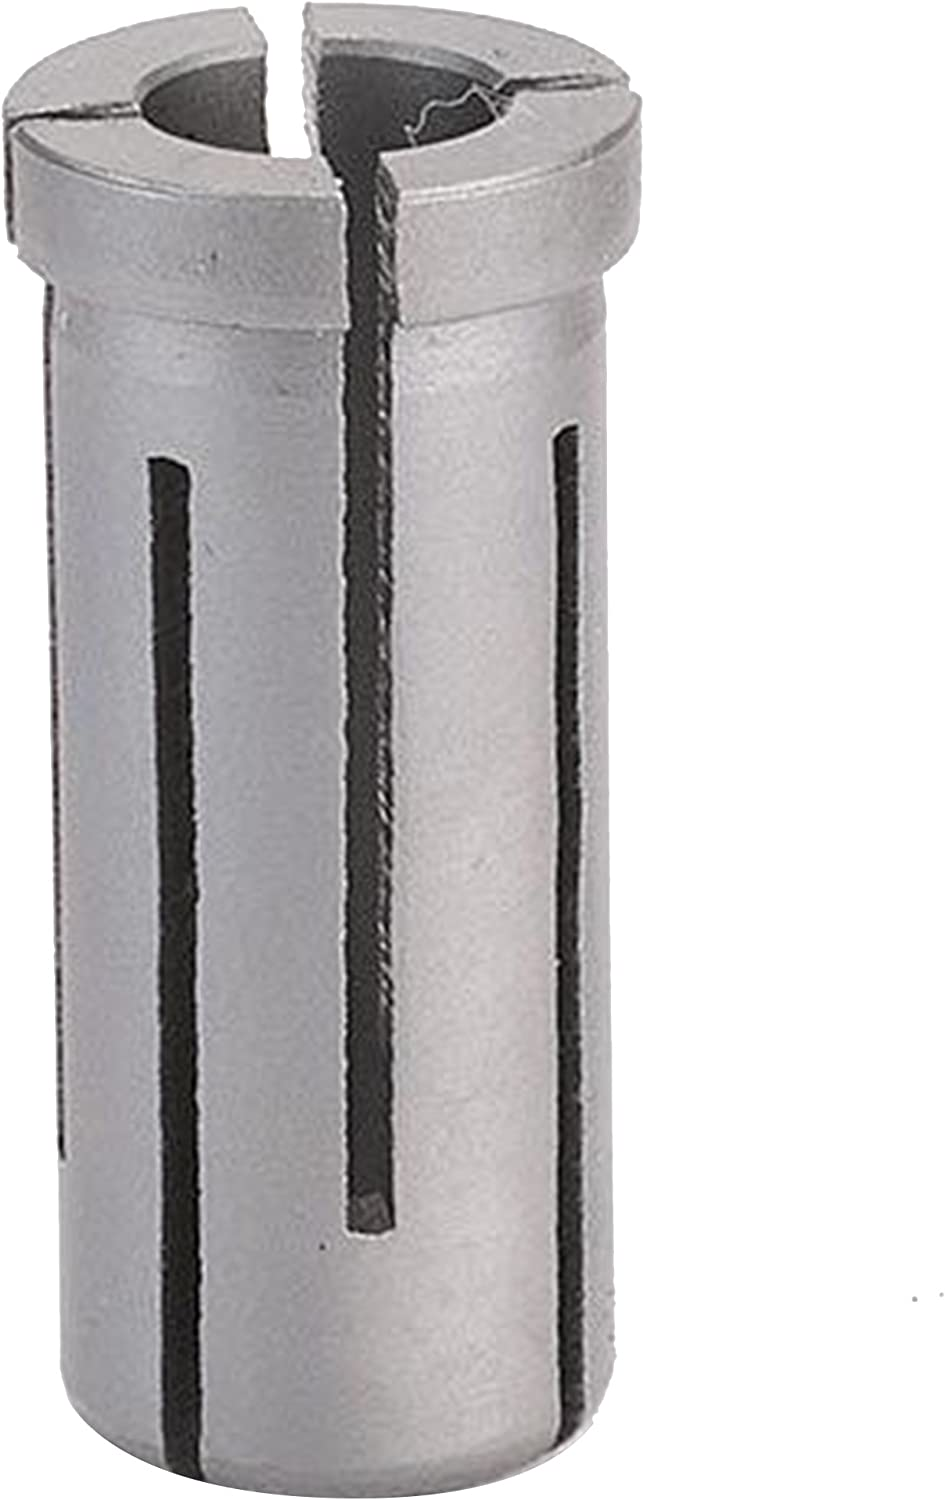 Whiteside Router Bits 6400x8 Steel 8mm Collets with Ultra-Cheap Limited time cheap sale Deals Insid